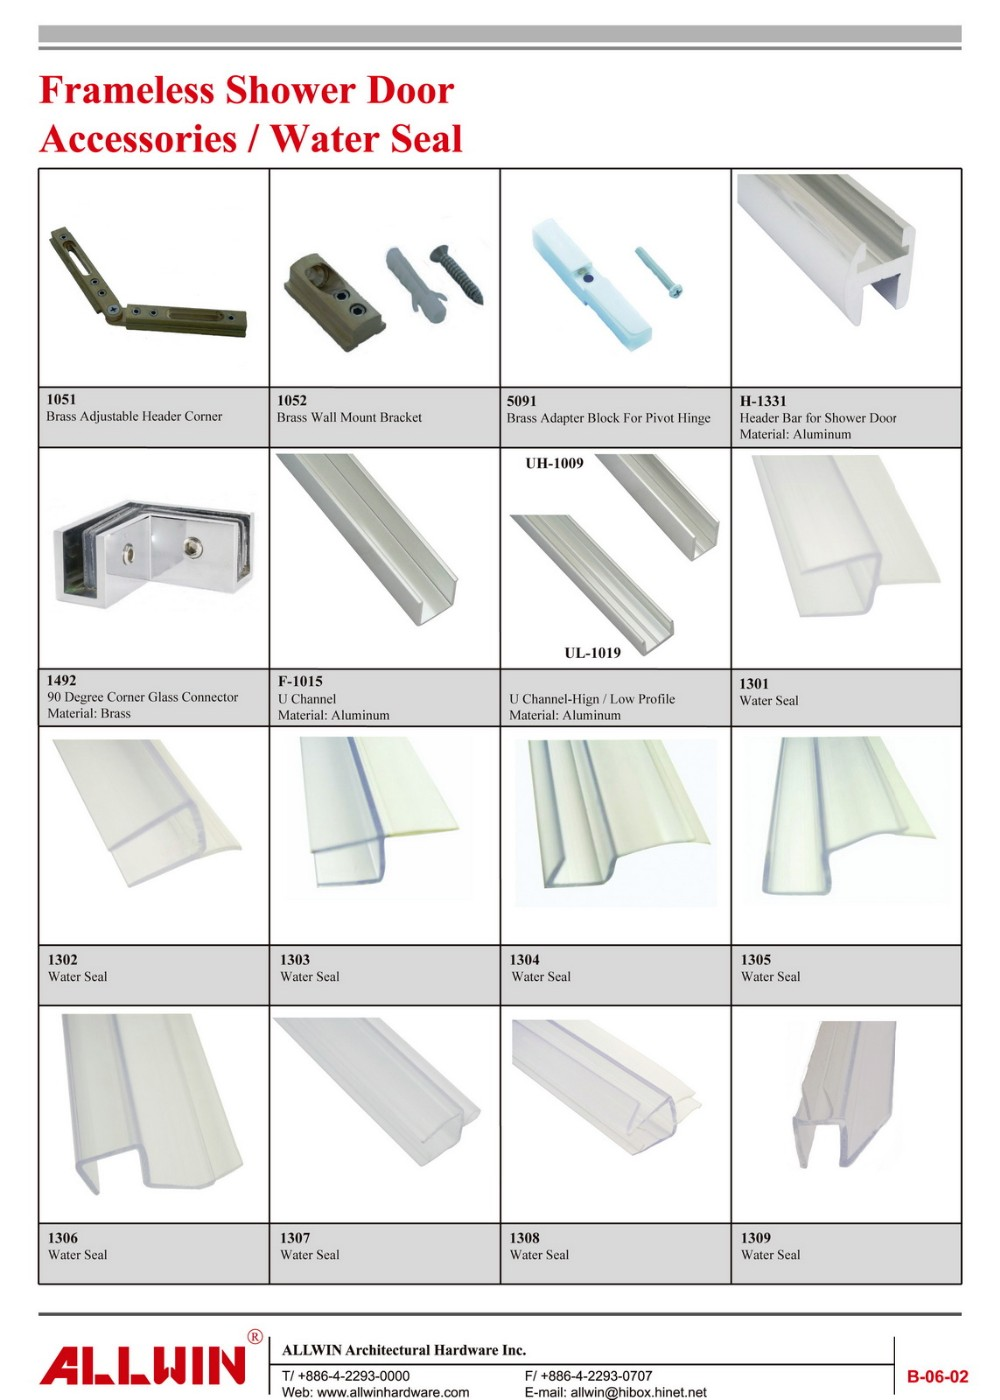 Anodized Aluminum Single Channel Extrusion U Channel Product